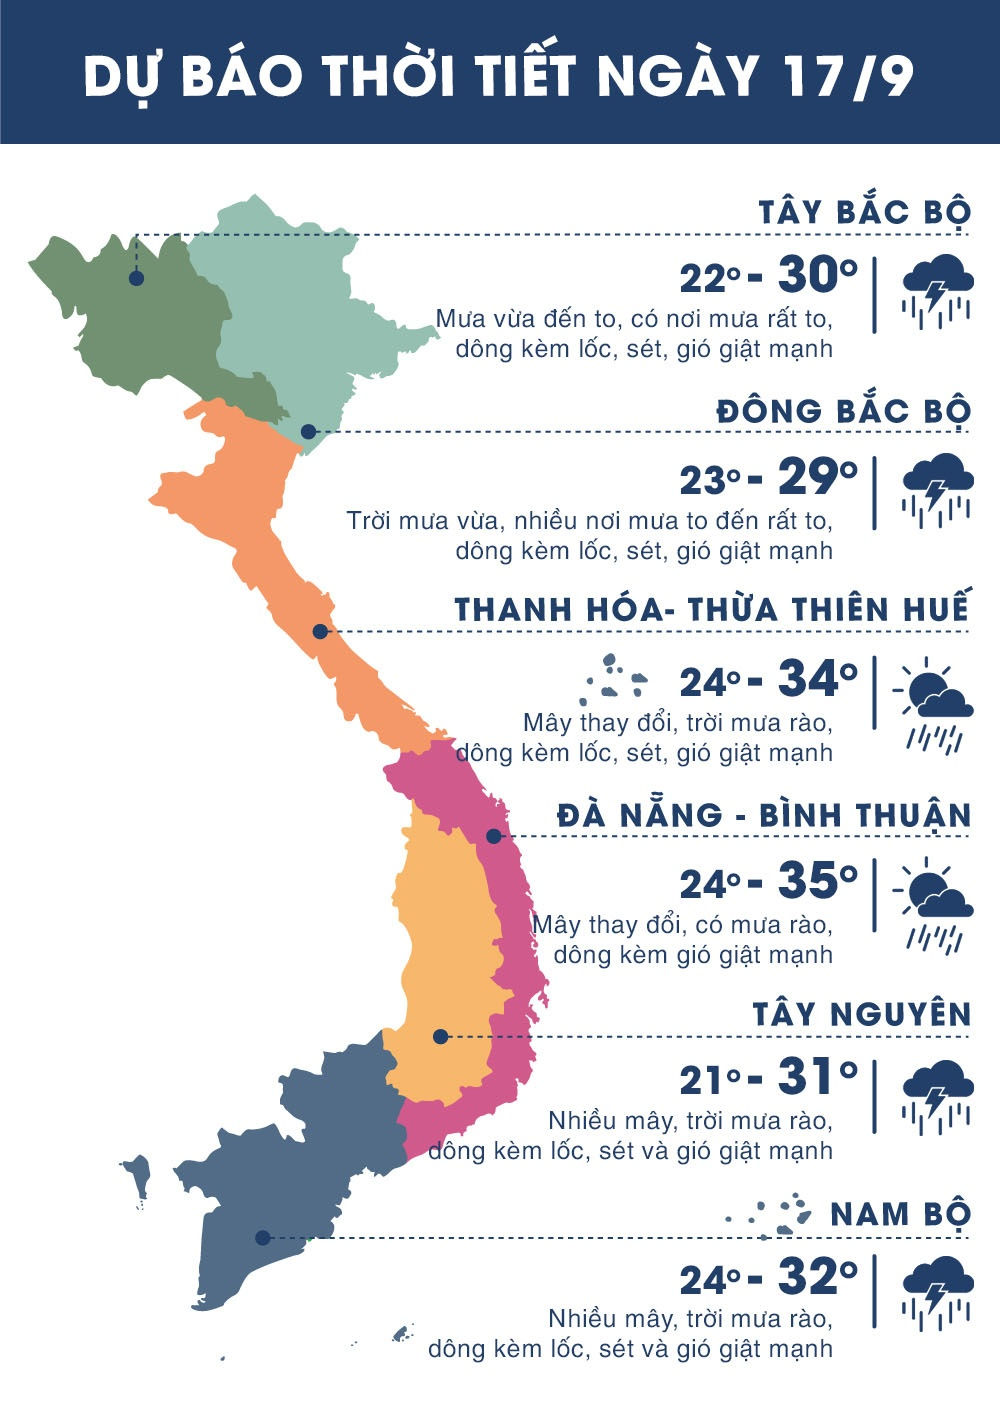 Thoi tiet ngay 17/9: Ha Noi giam 7 do C, mua dong ca ngay hinh anh 1